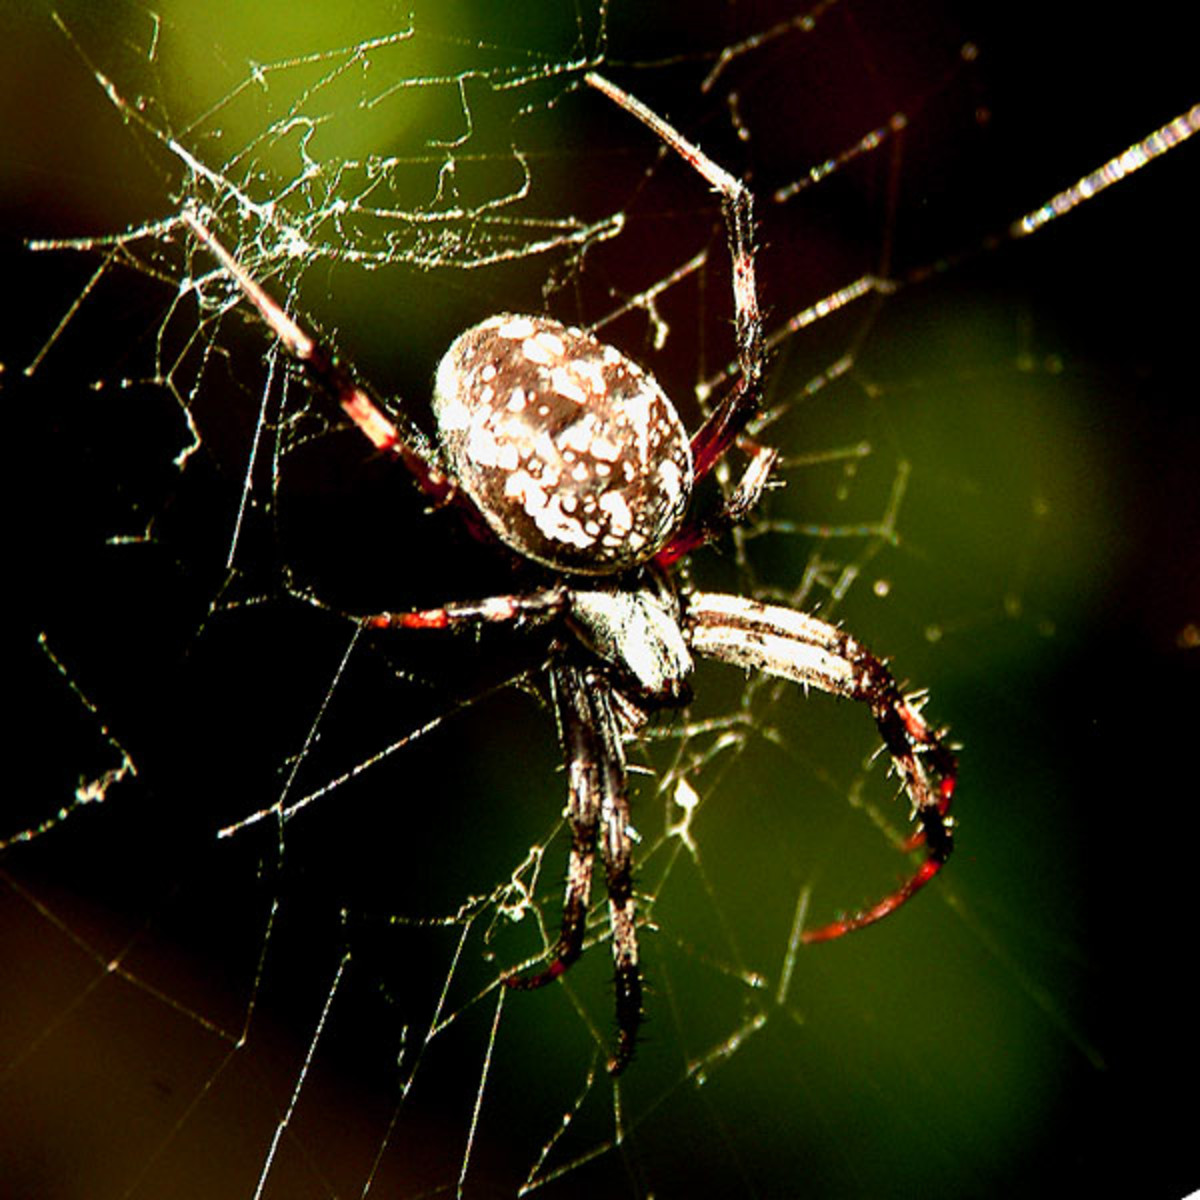 Spiders are closer to you than you may think!